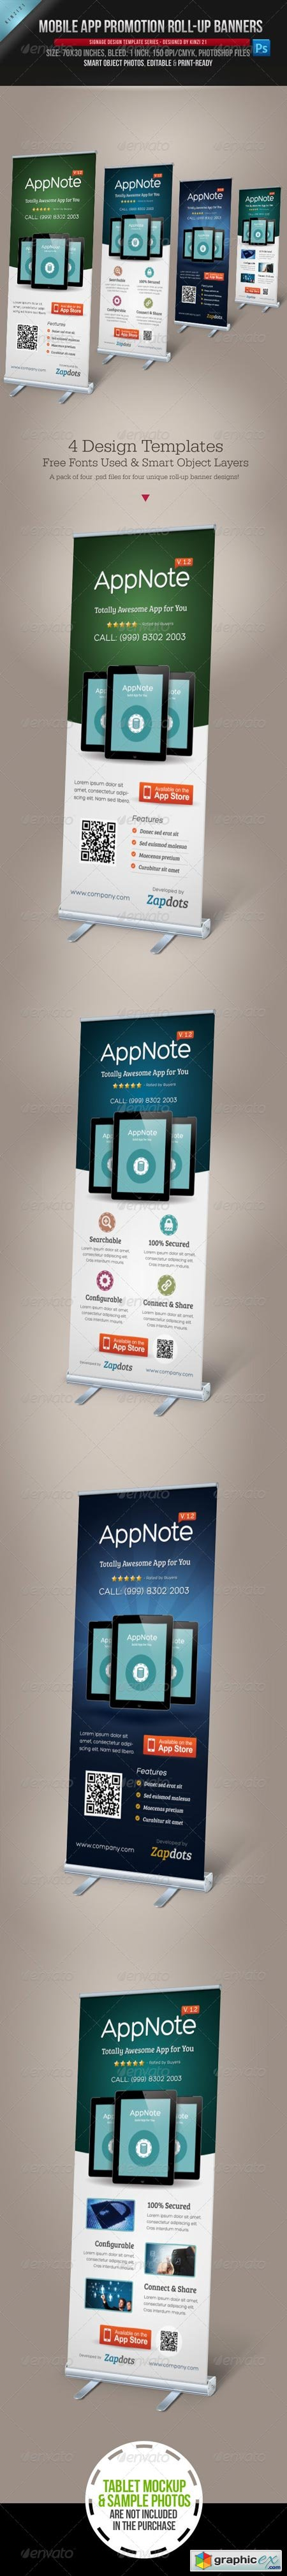 Mobile App Promotion Roll-up Banners 4042603